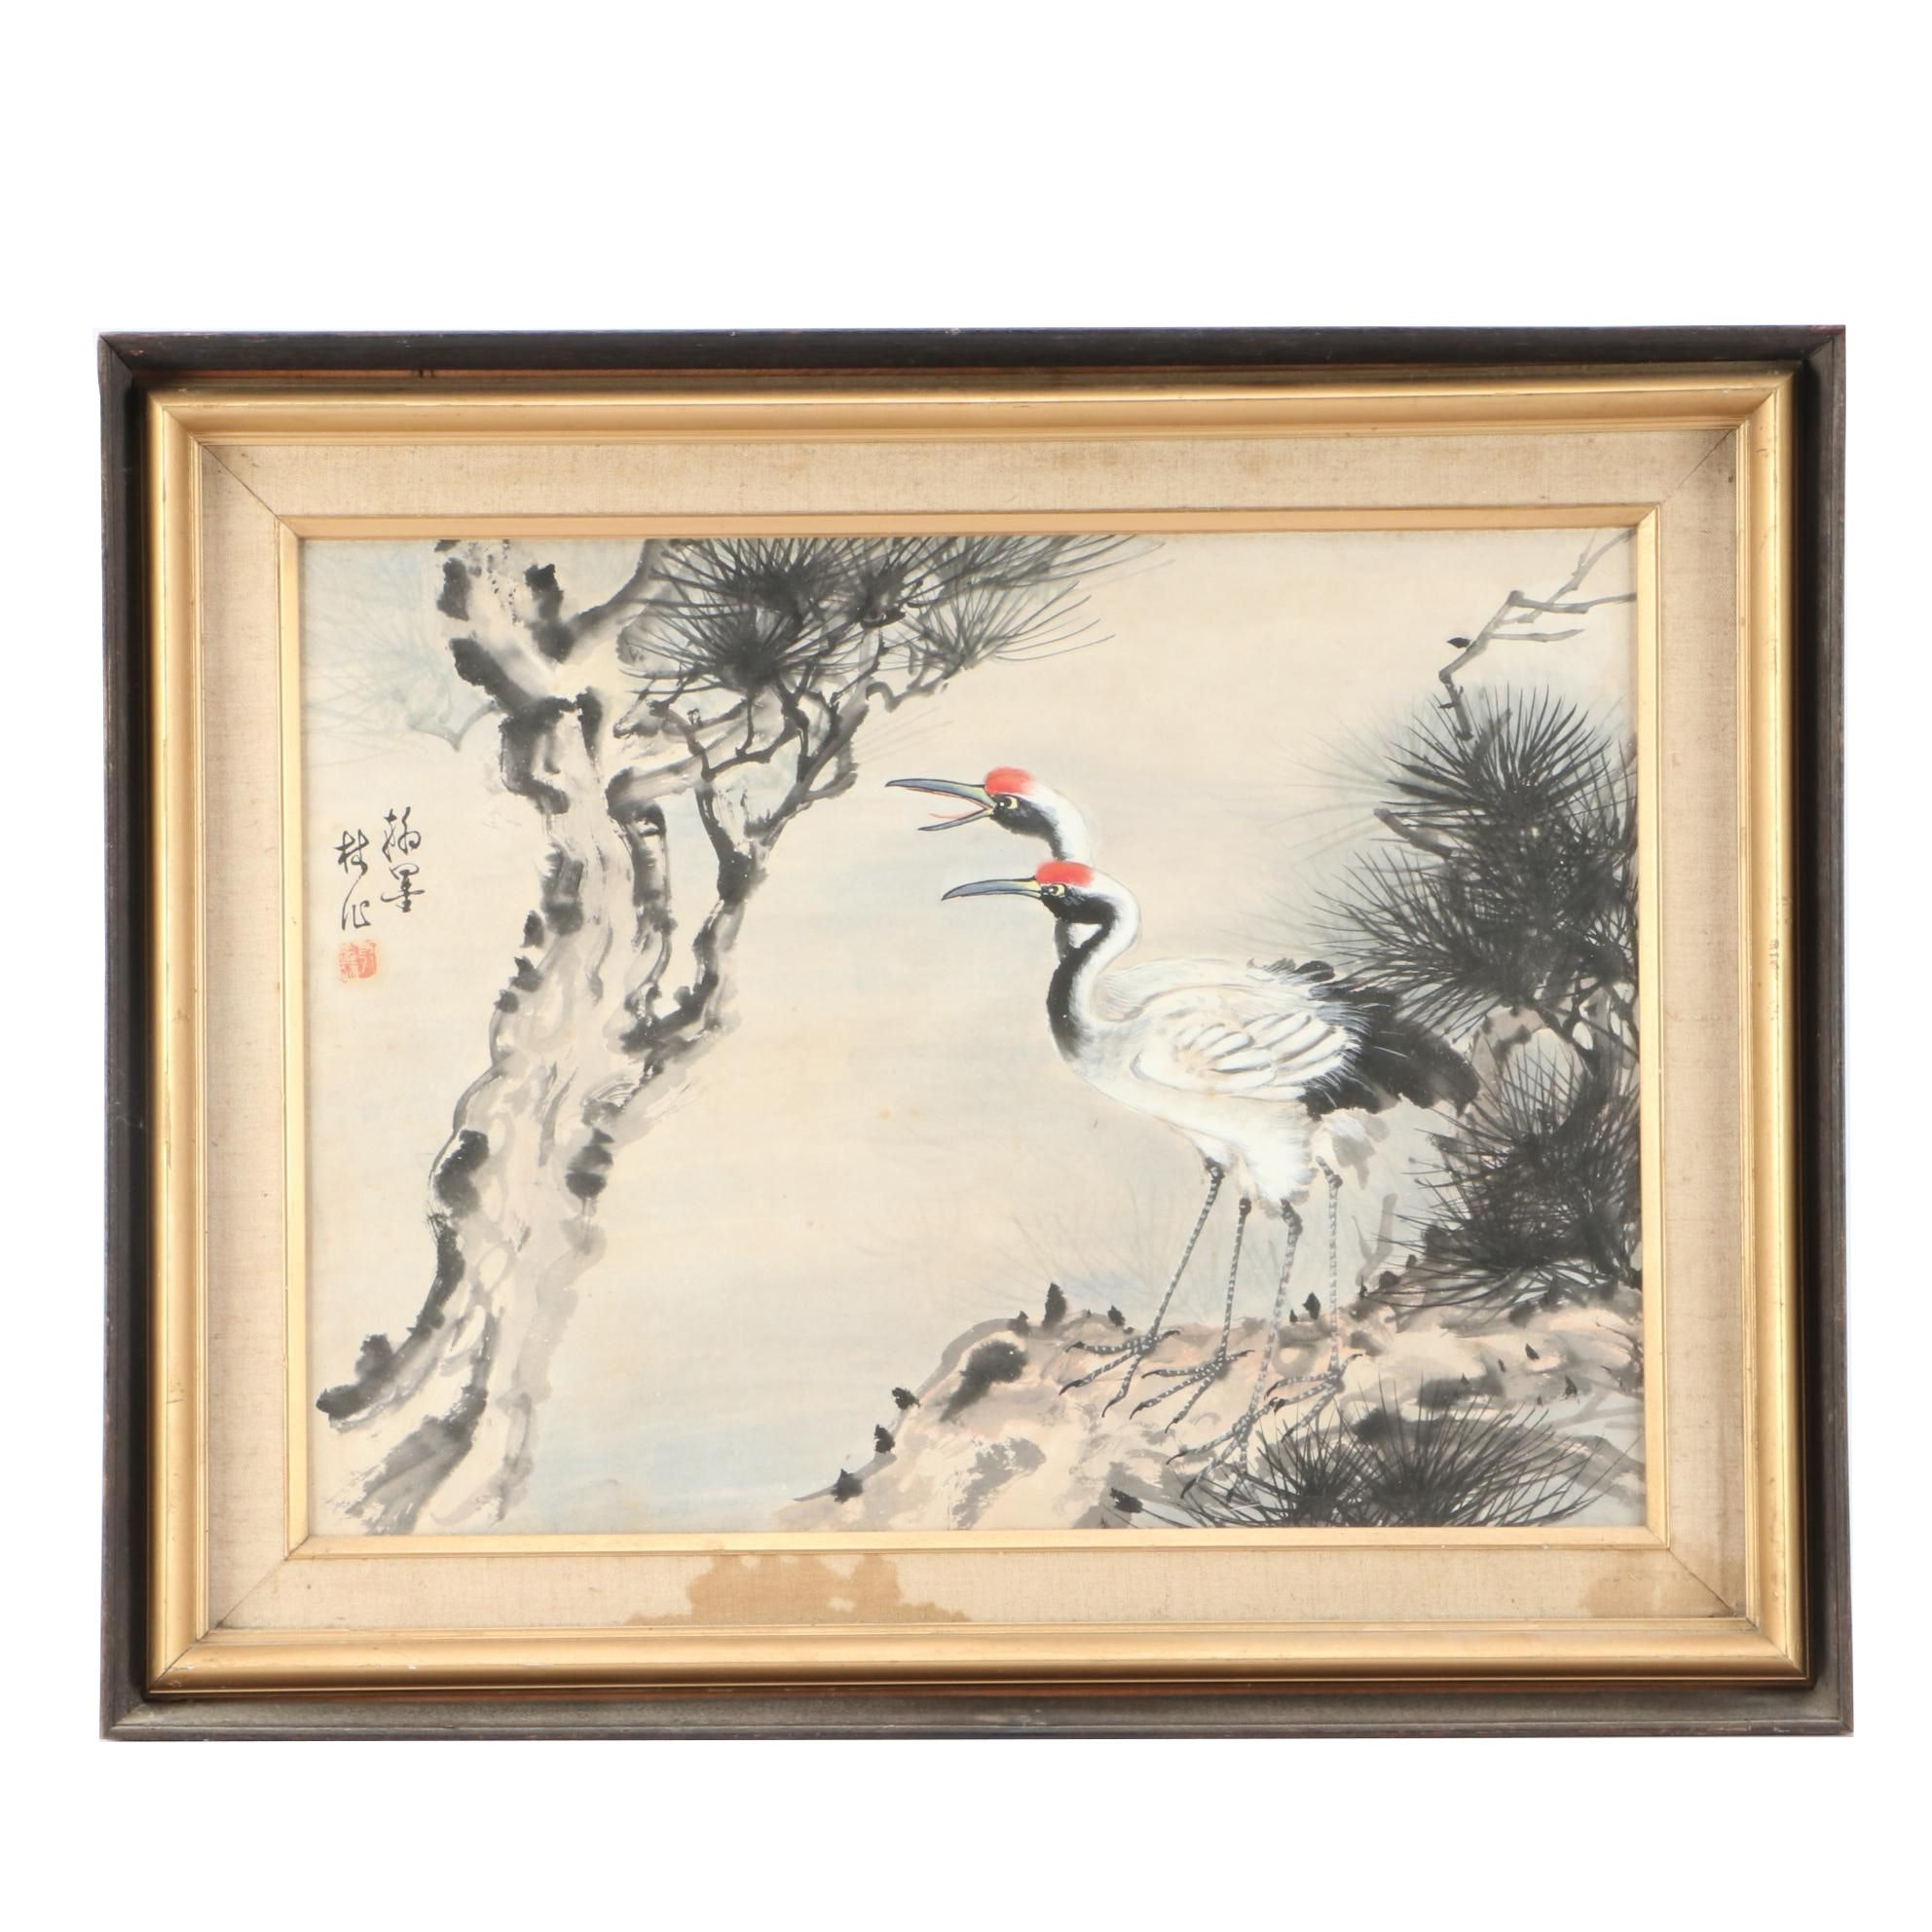 Chinese Ink and Watercolor Painting of Cranes and Pines